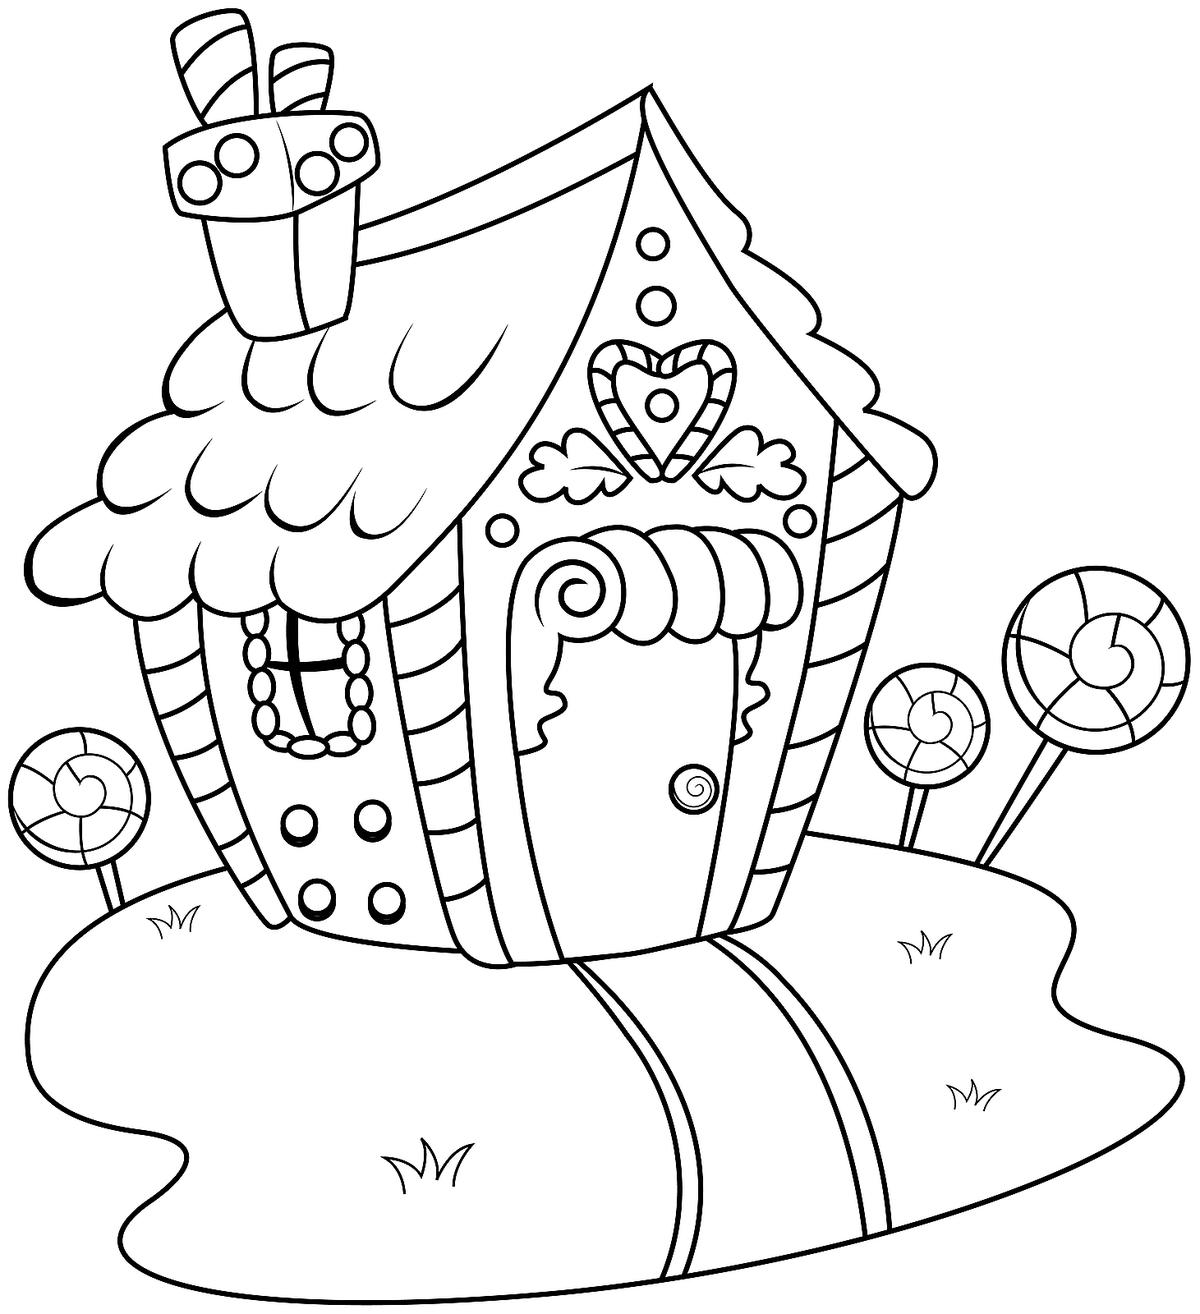 Gingerbread House Coloring Pages Printable Coloring Activity Amp Game Pages Featuring